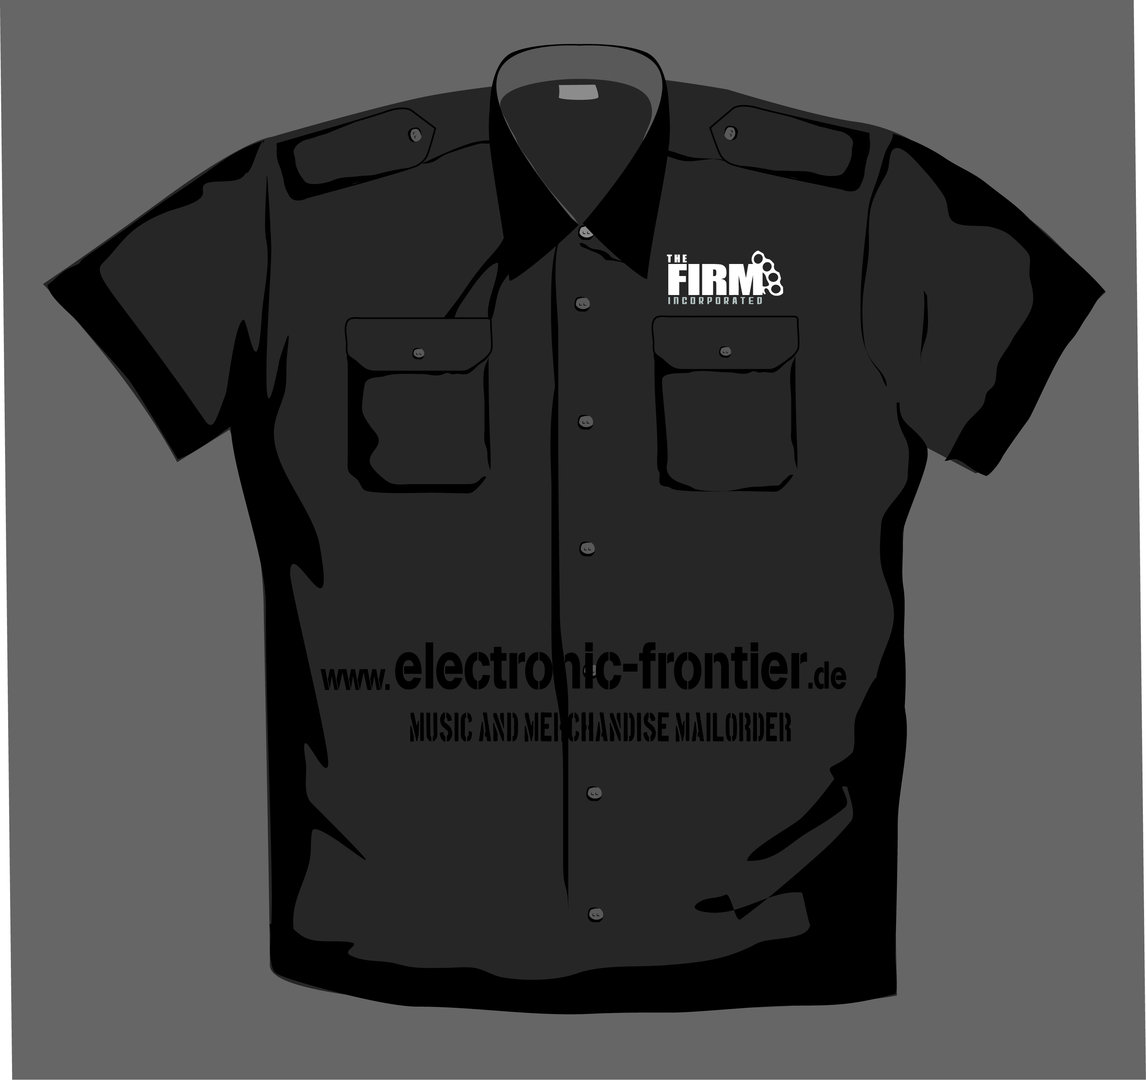 The Firm Inc. Women Worker Shirt